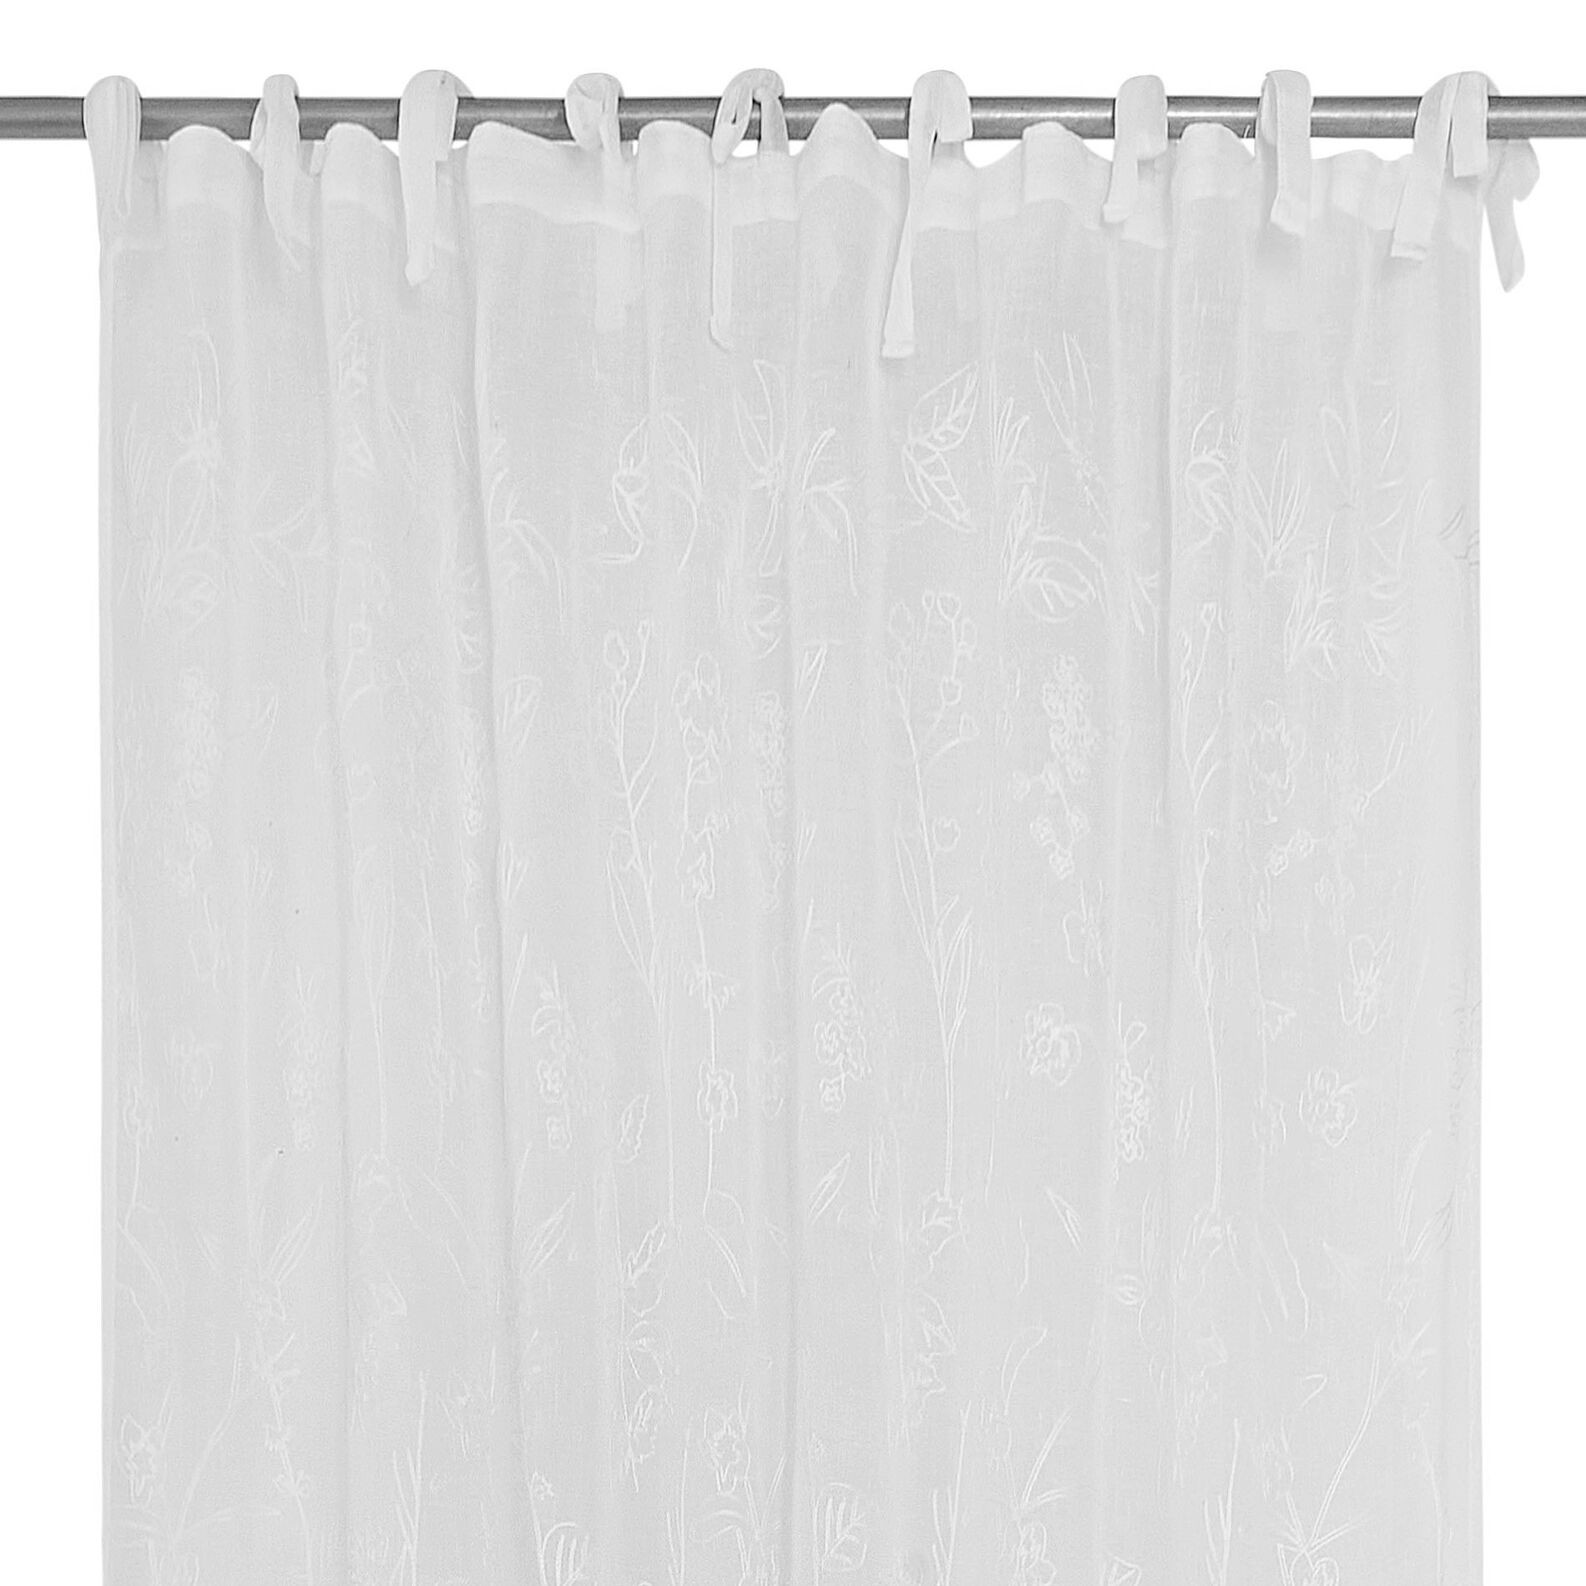 Curtain with floral motif embroidery and ties